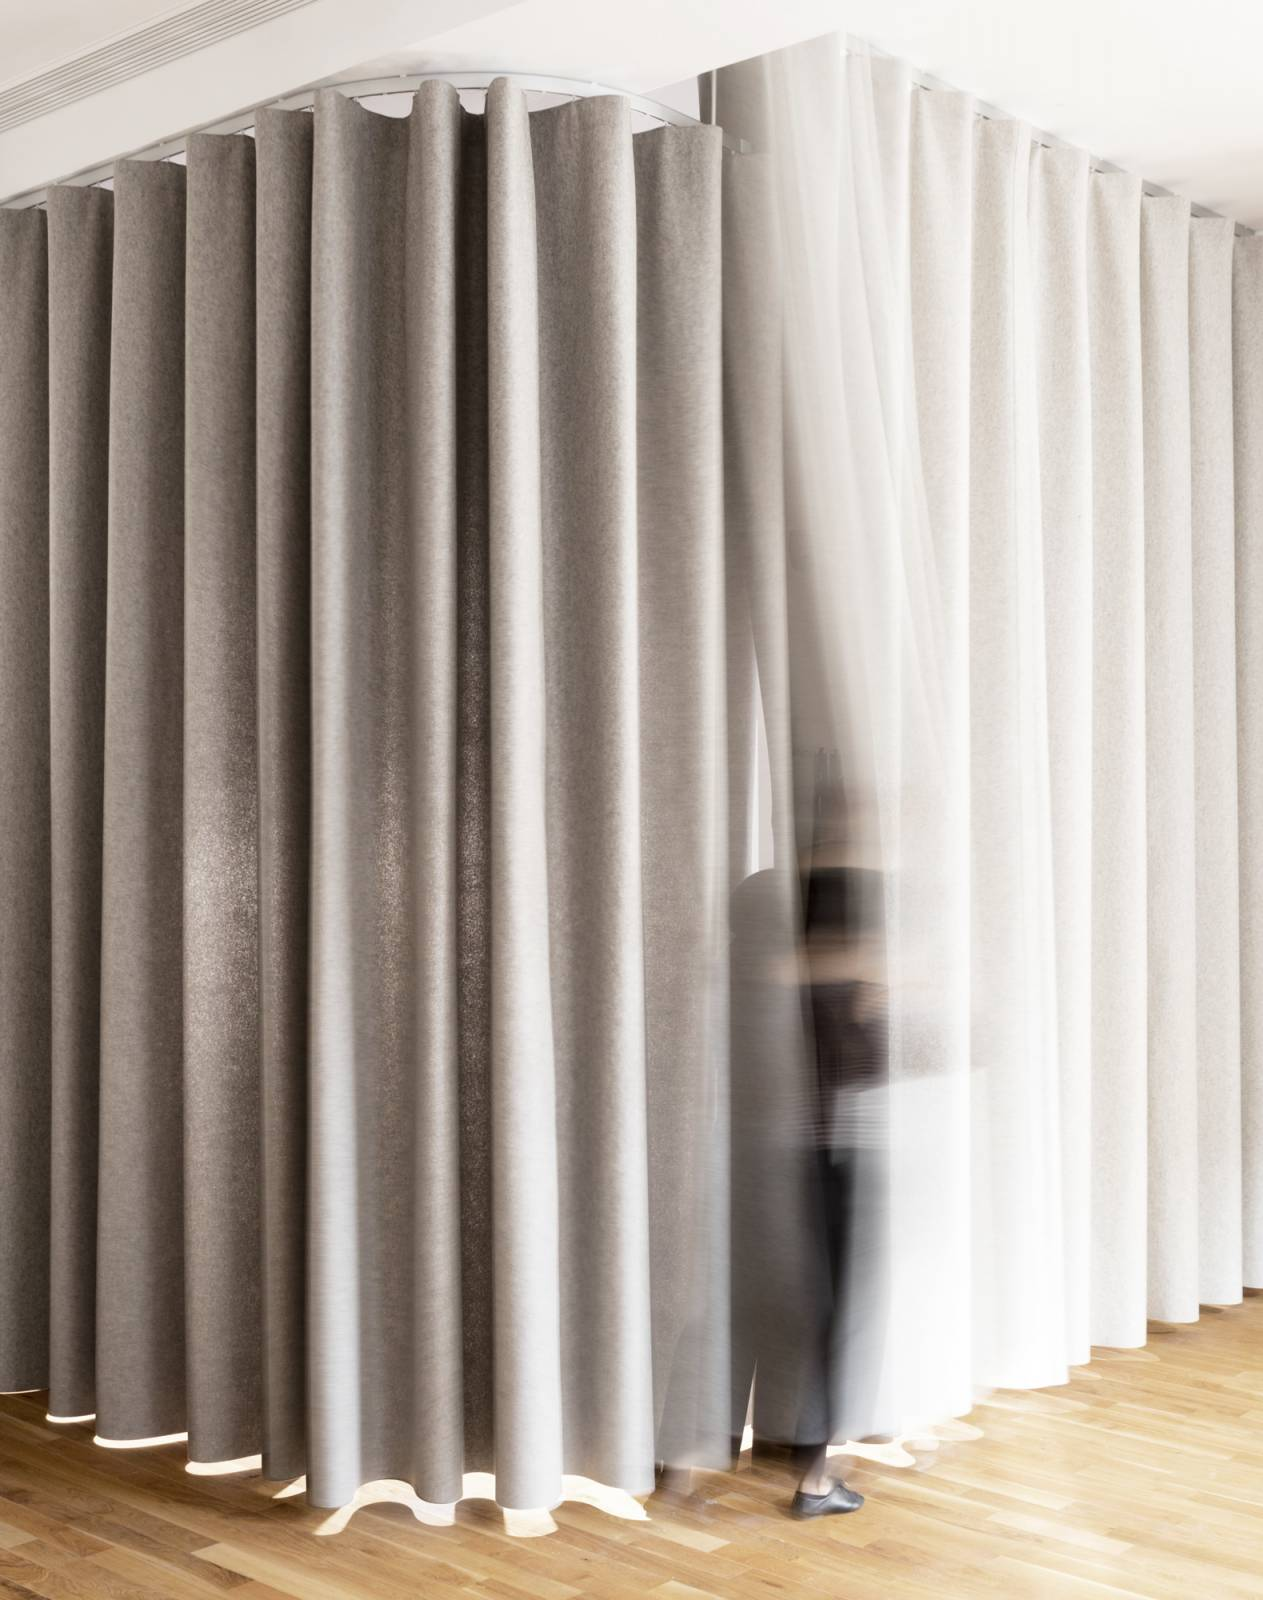 namad-XL-wave-curtains-closed-position